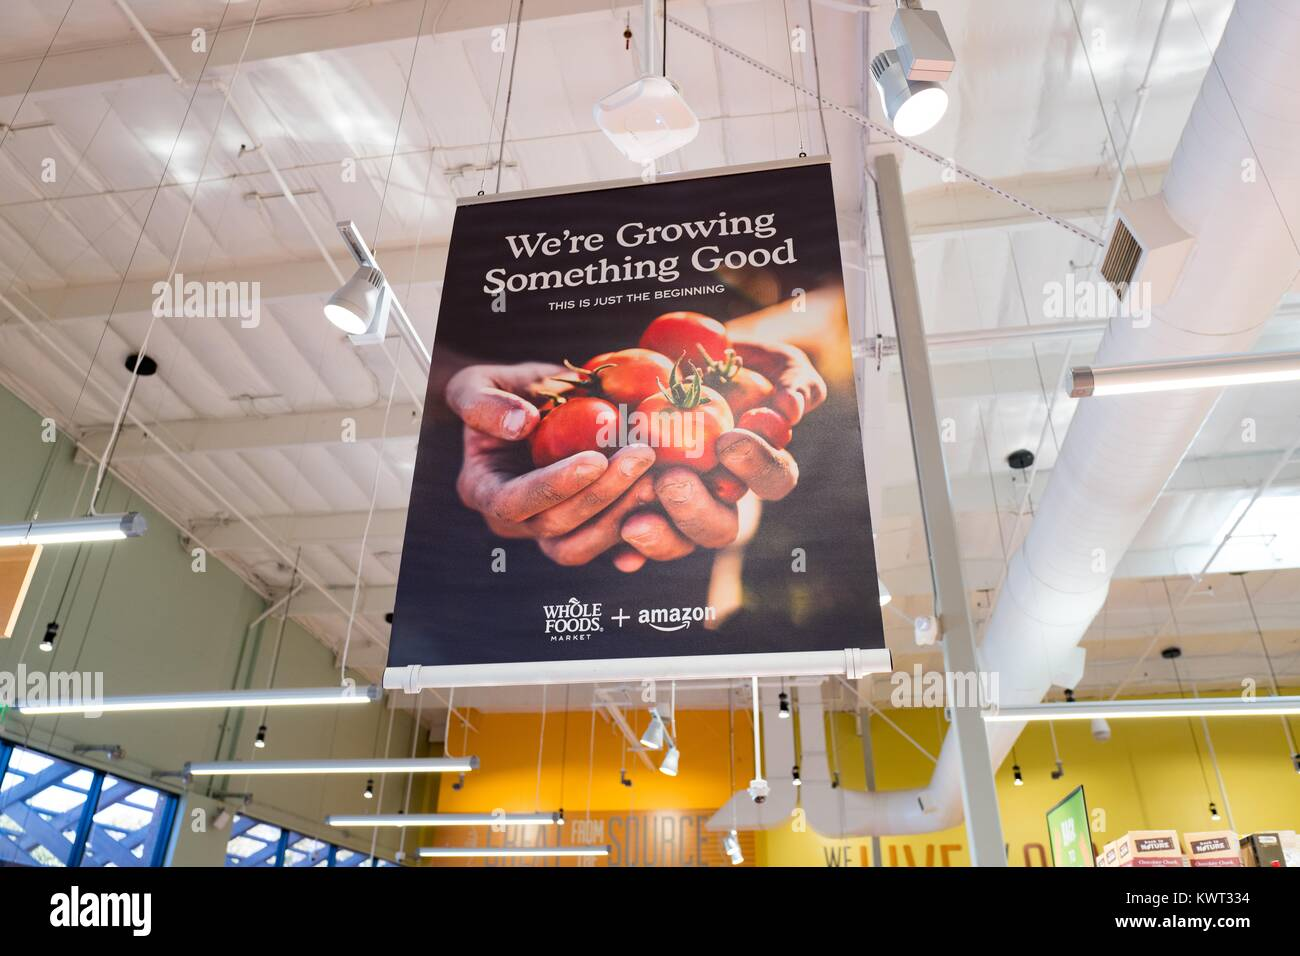 Signage at the Whole Foods Market store in San Ramon, California reading 'We're growing something good', - Stock Image